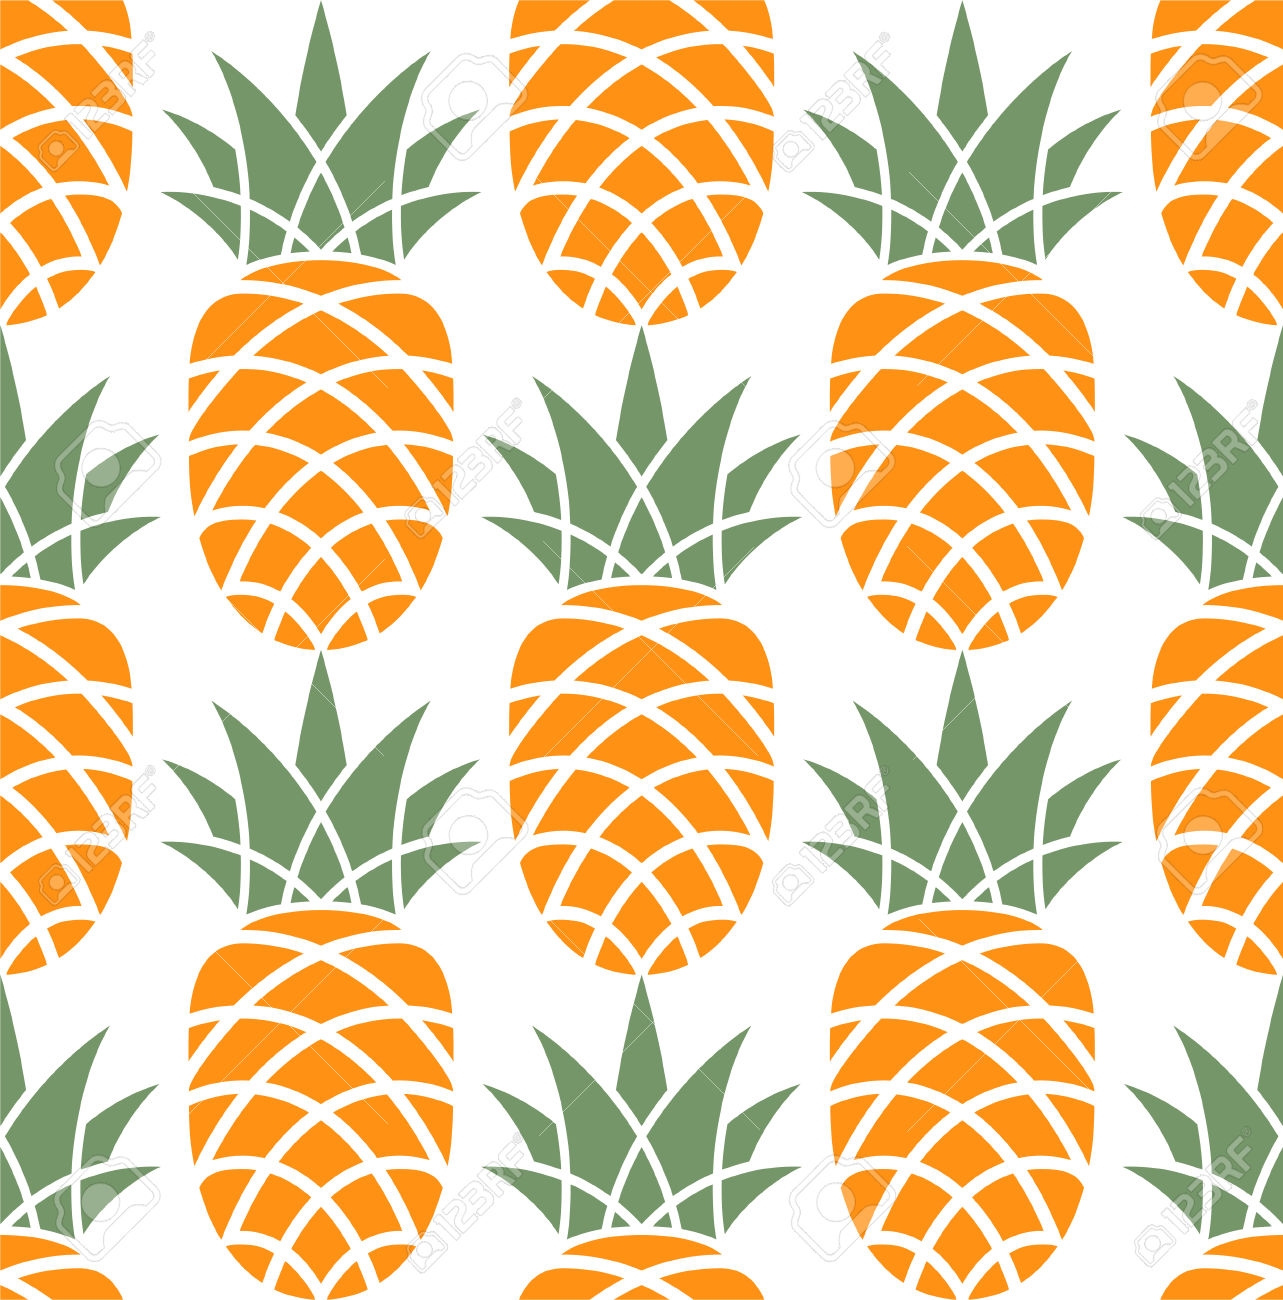 30898747-Motif-ananas-Banque-d'images